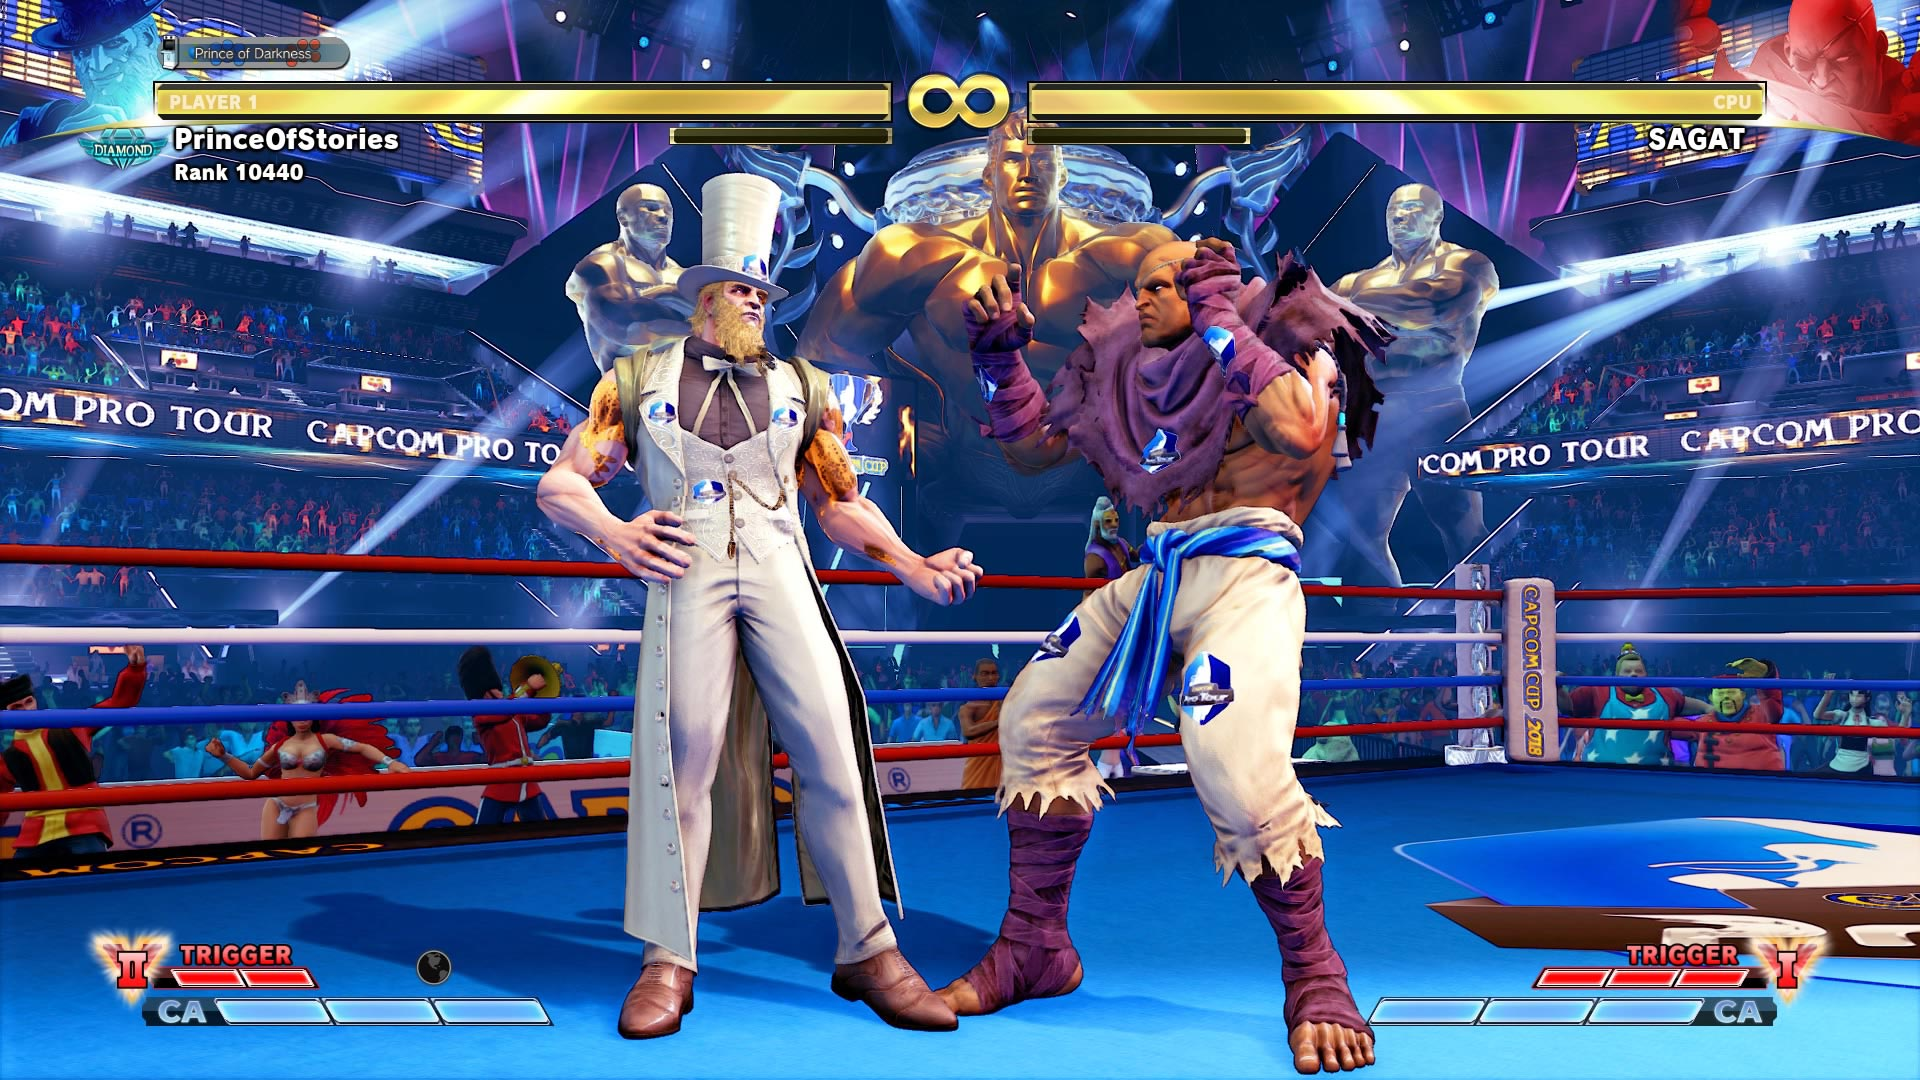 Street Fighter 5: Arcade Edition's sponsored content screenshots 3 out of 6 image gallery